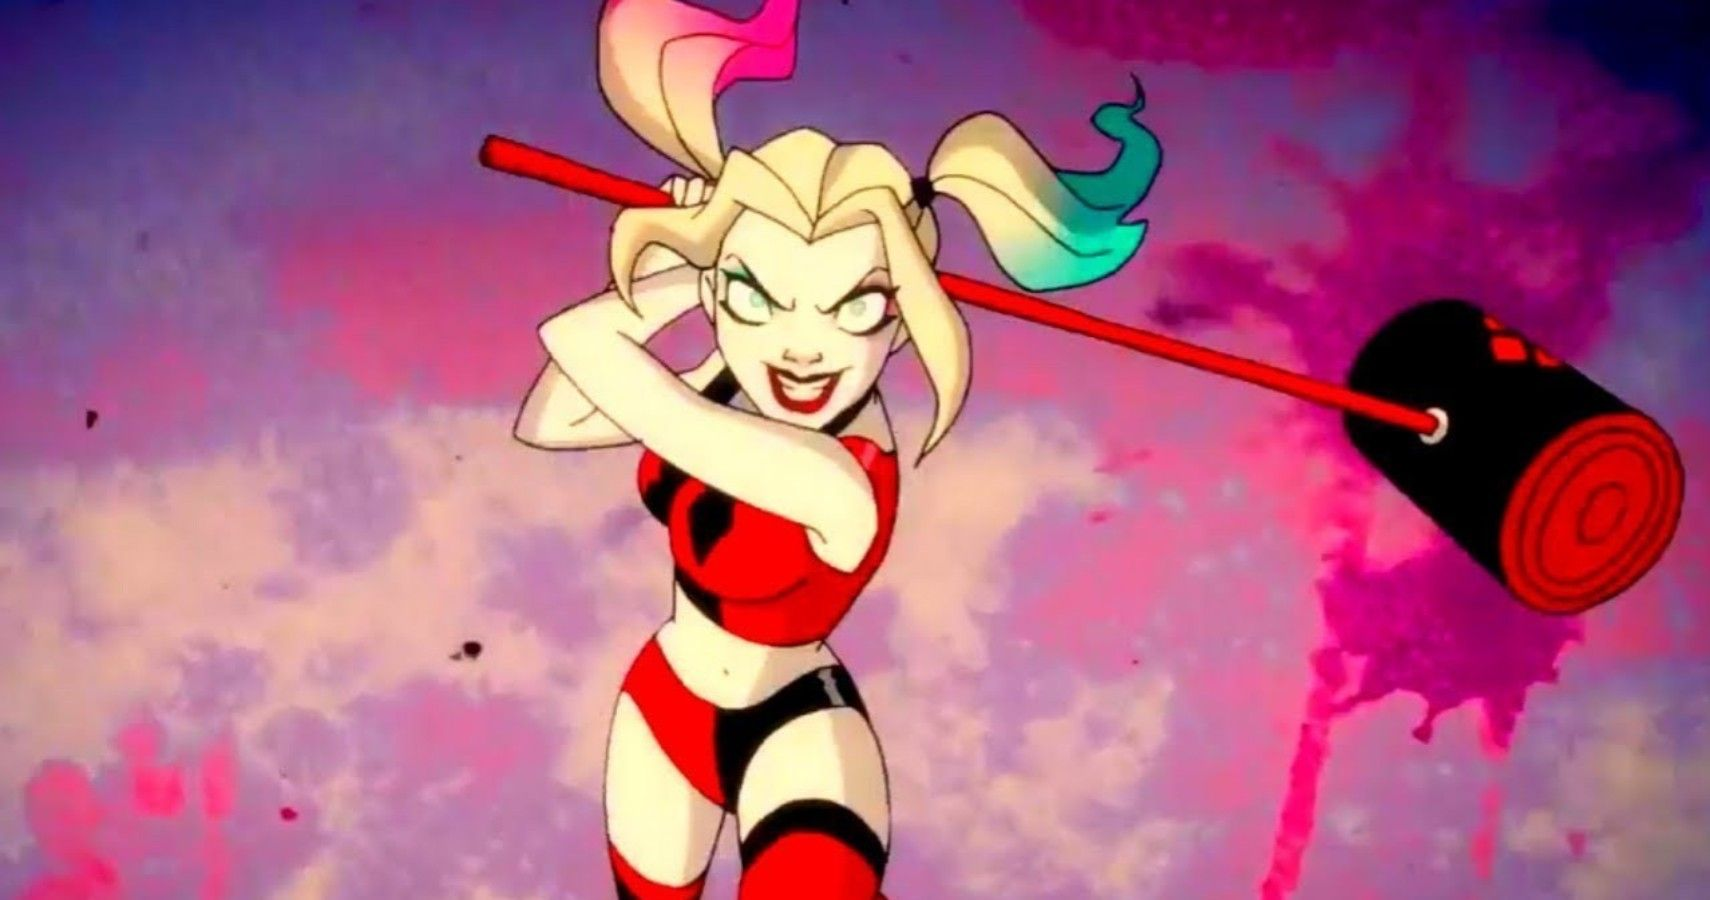 Harley Quinn 5 Ways The Dc Universe Cartoon Improved Her Character 5 Ways It Didn T